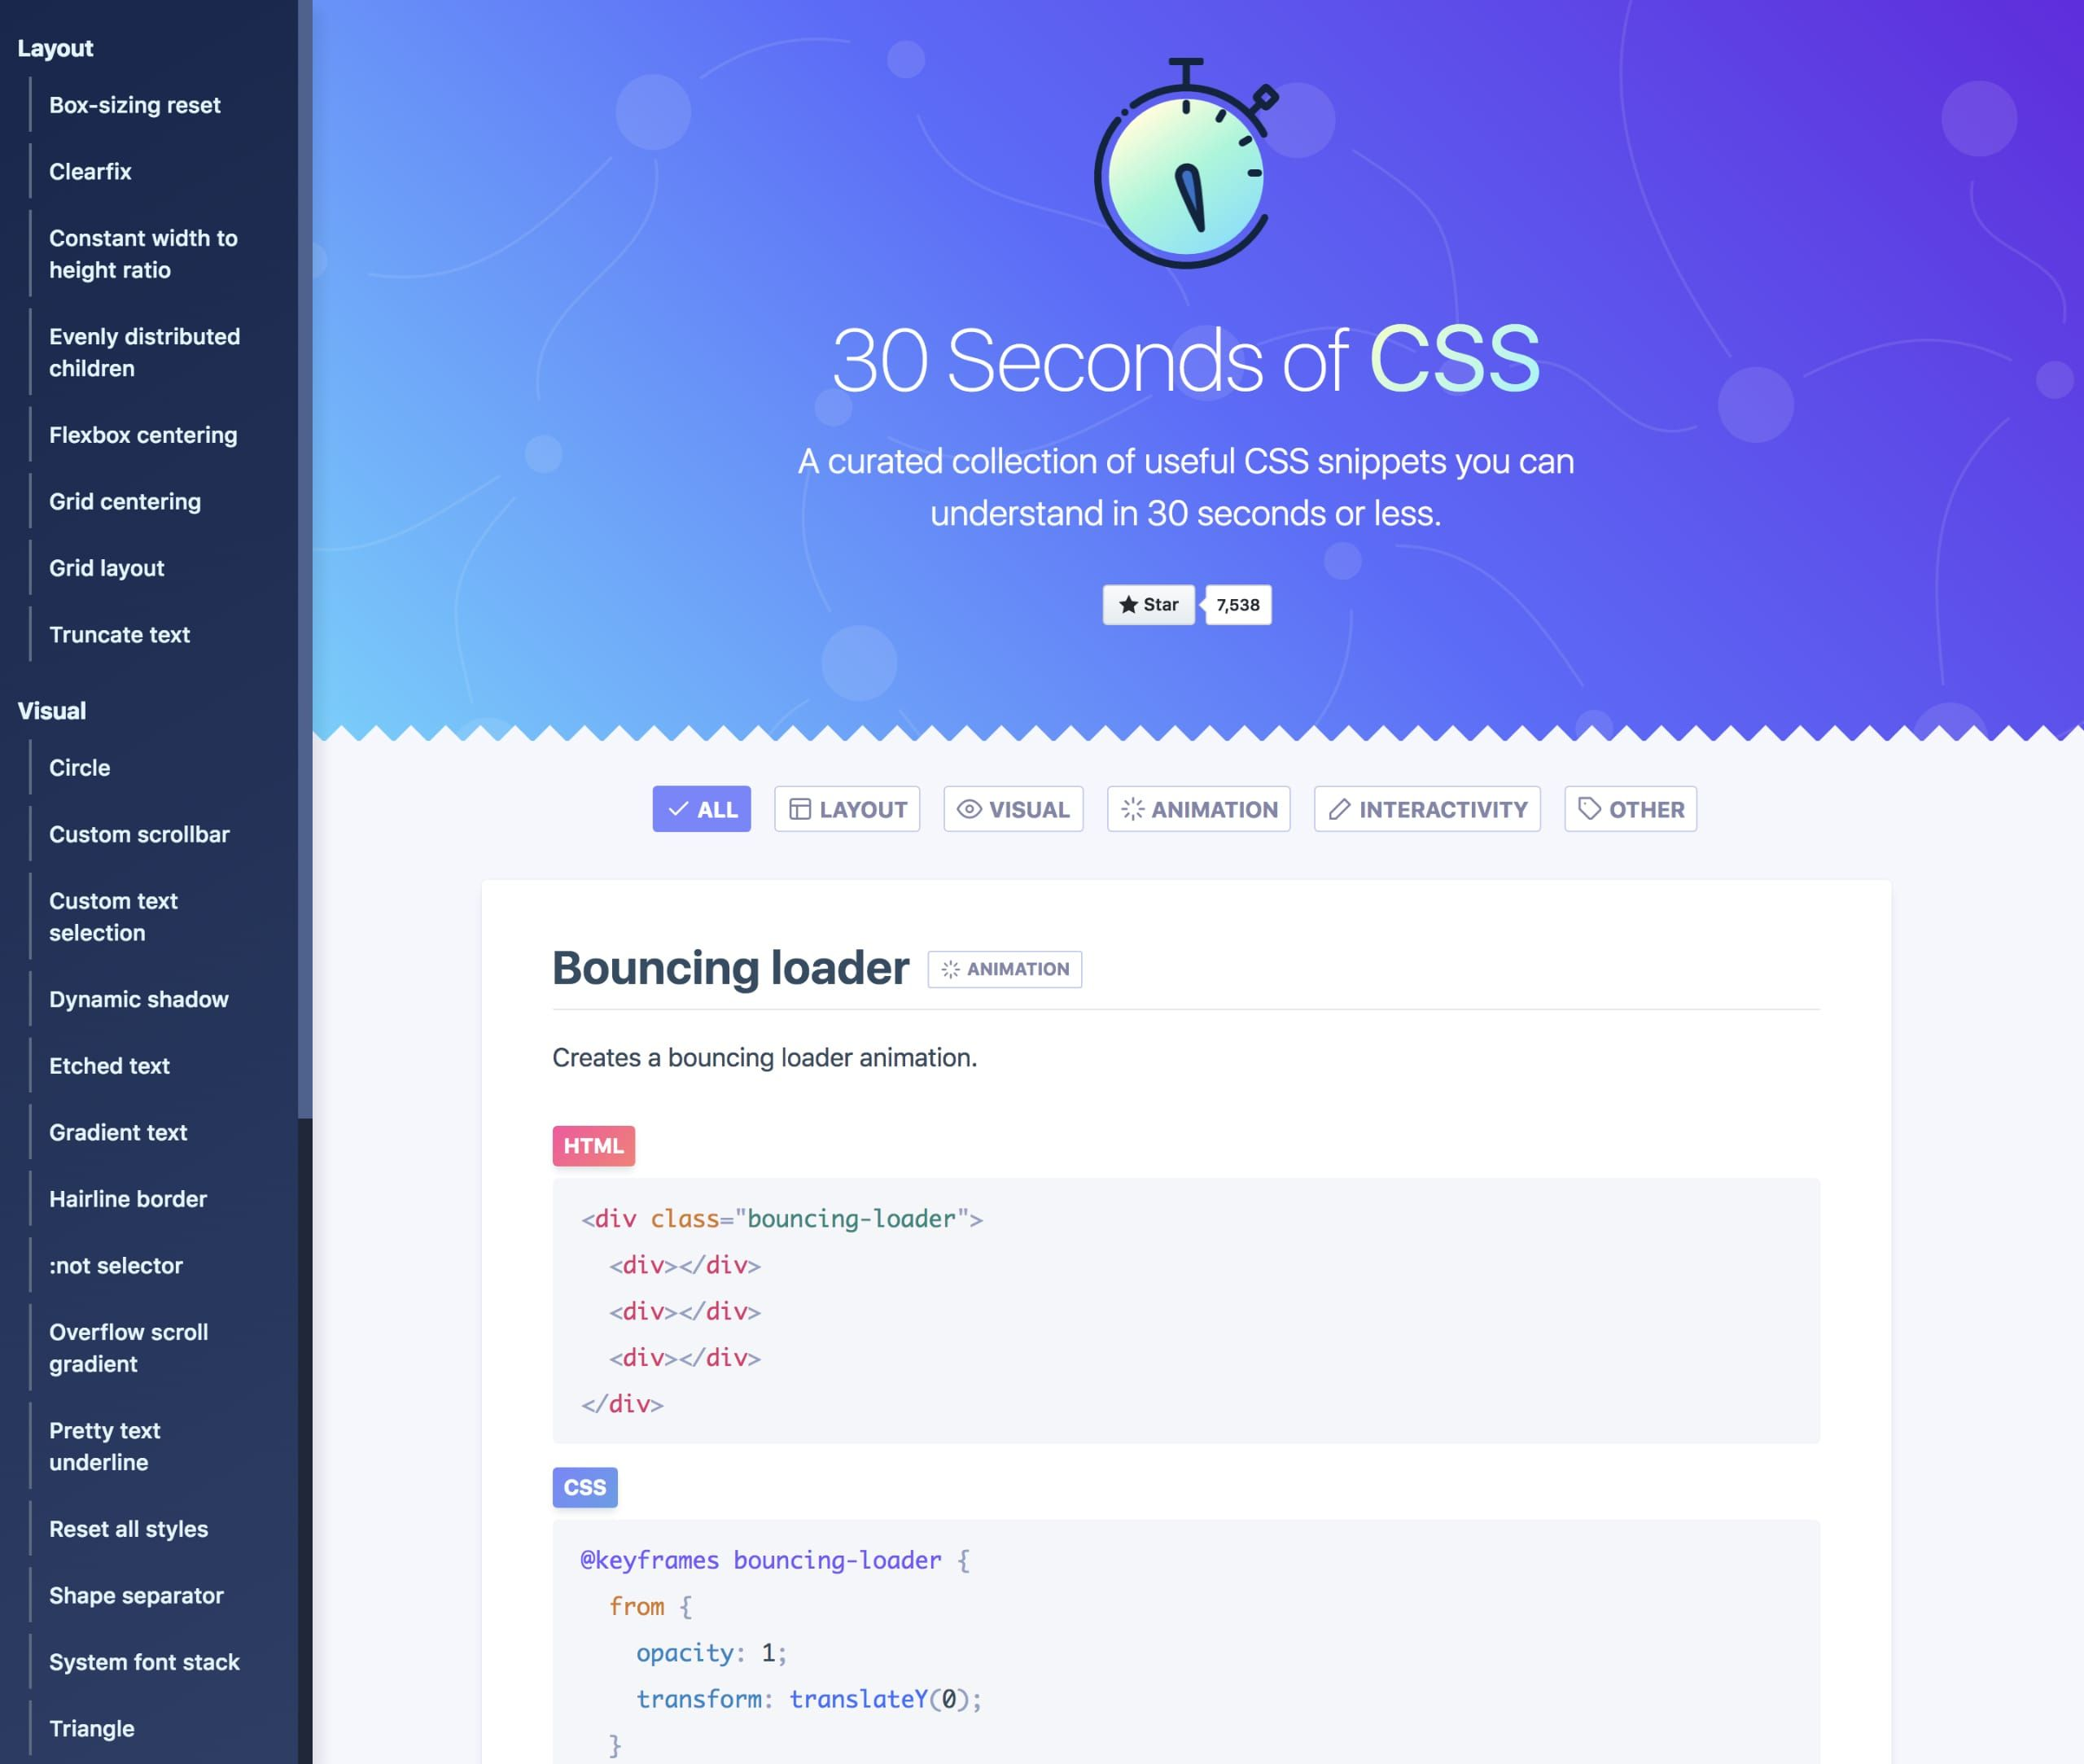 Long-scrolling One Pager hosting a curated collection of